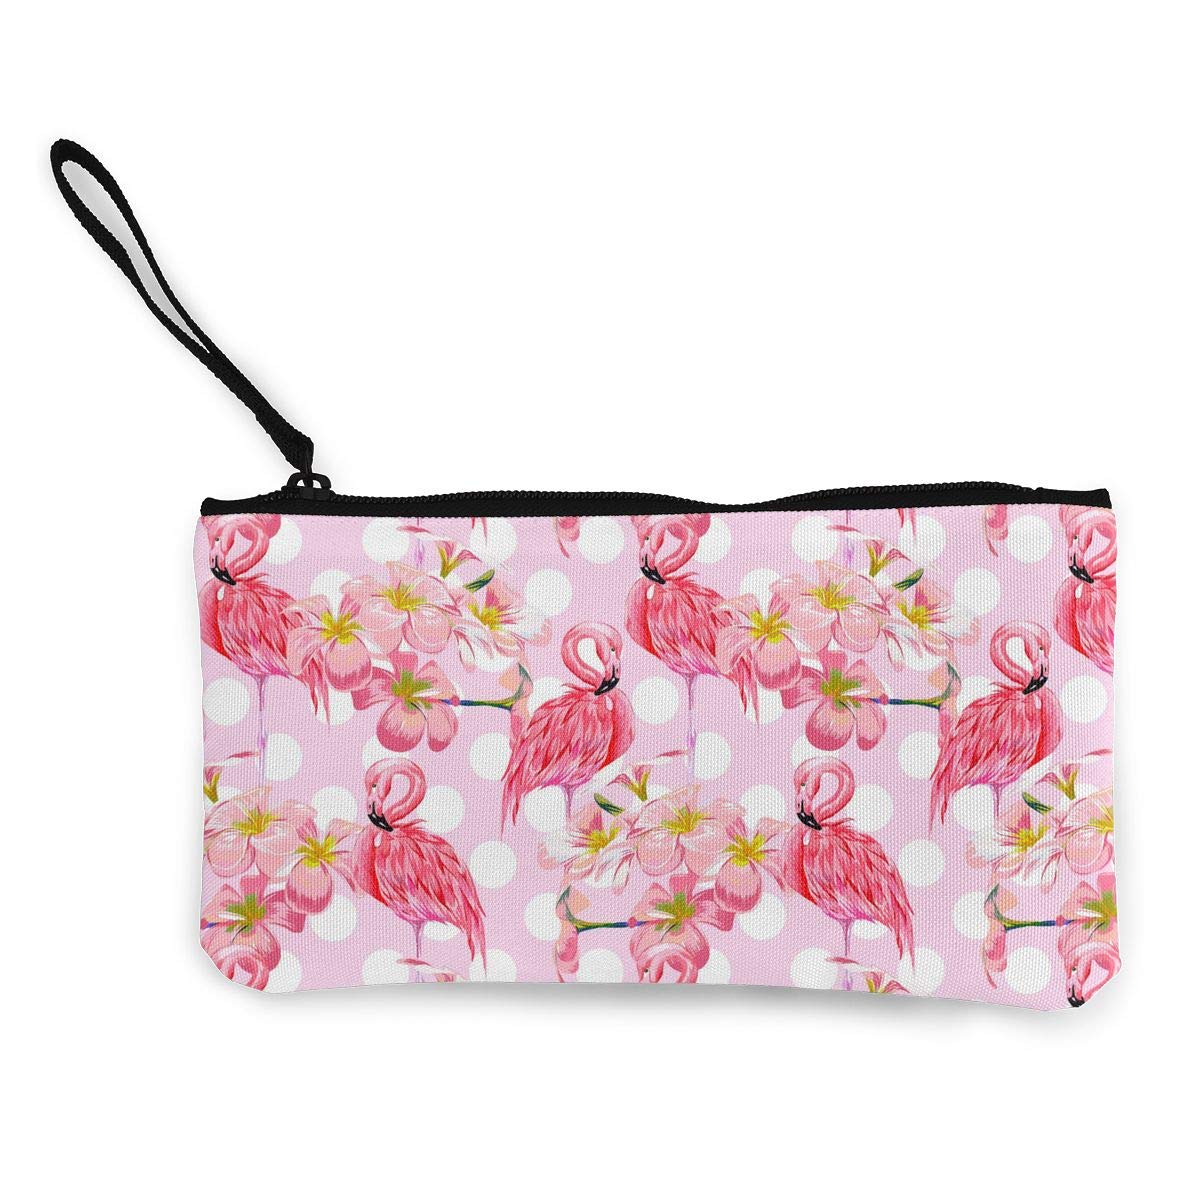 Coin Pouch Beautiful Flamingo Bird Polka Dot Canvas Coin Purse Cellphone Card Bag With Handle And Zipper